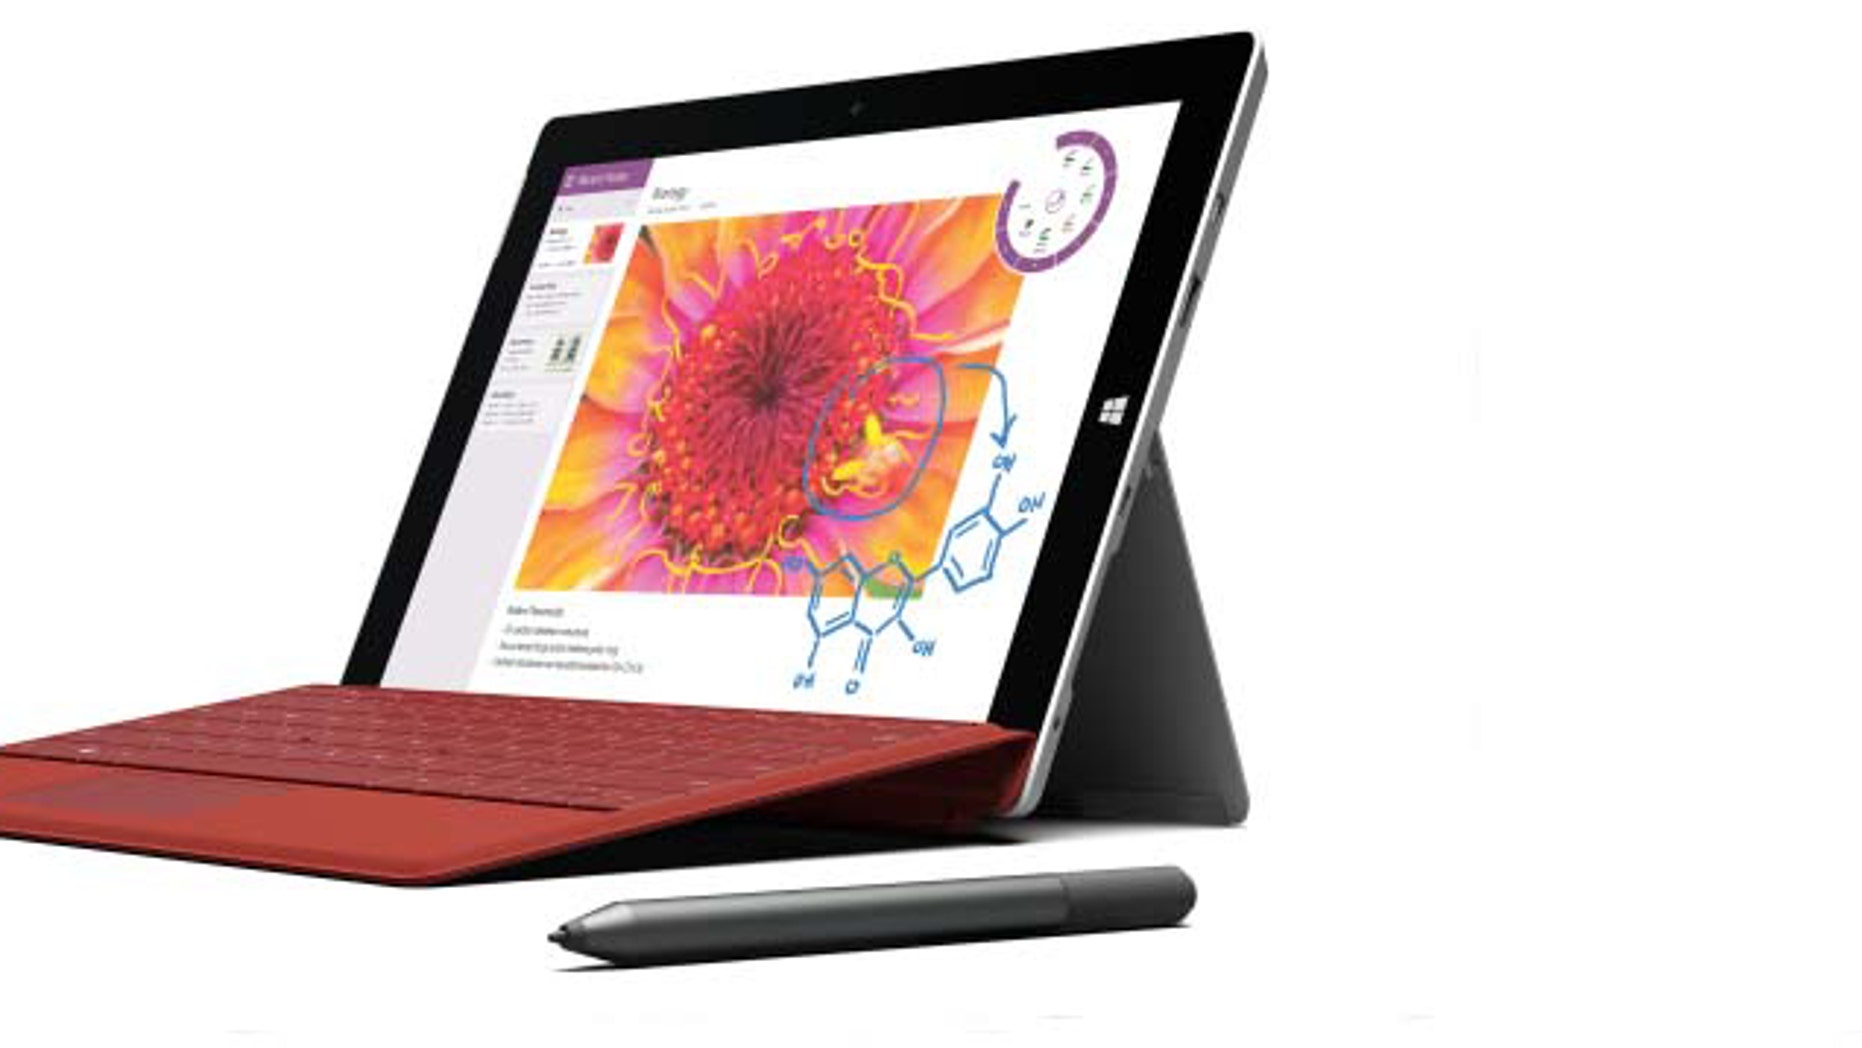 This product image provided by Microsoft shows the company's Surface 3 tablet.